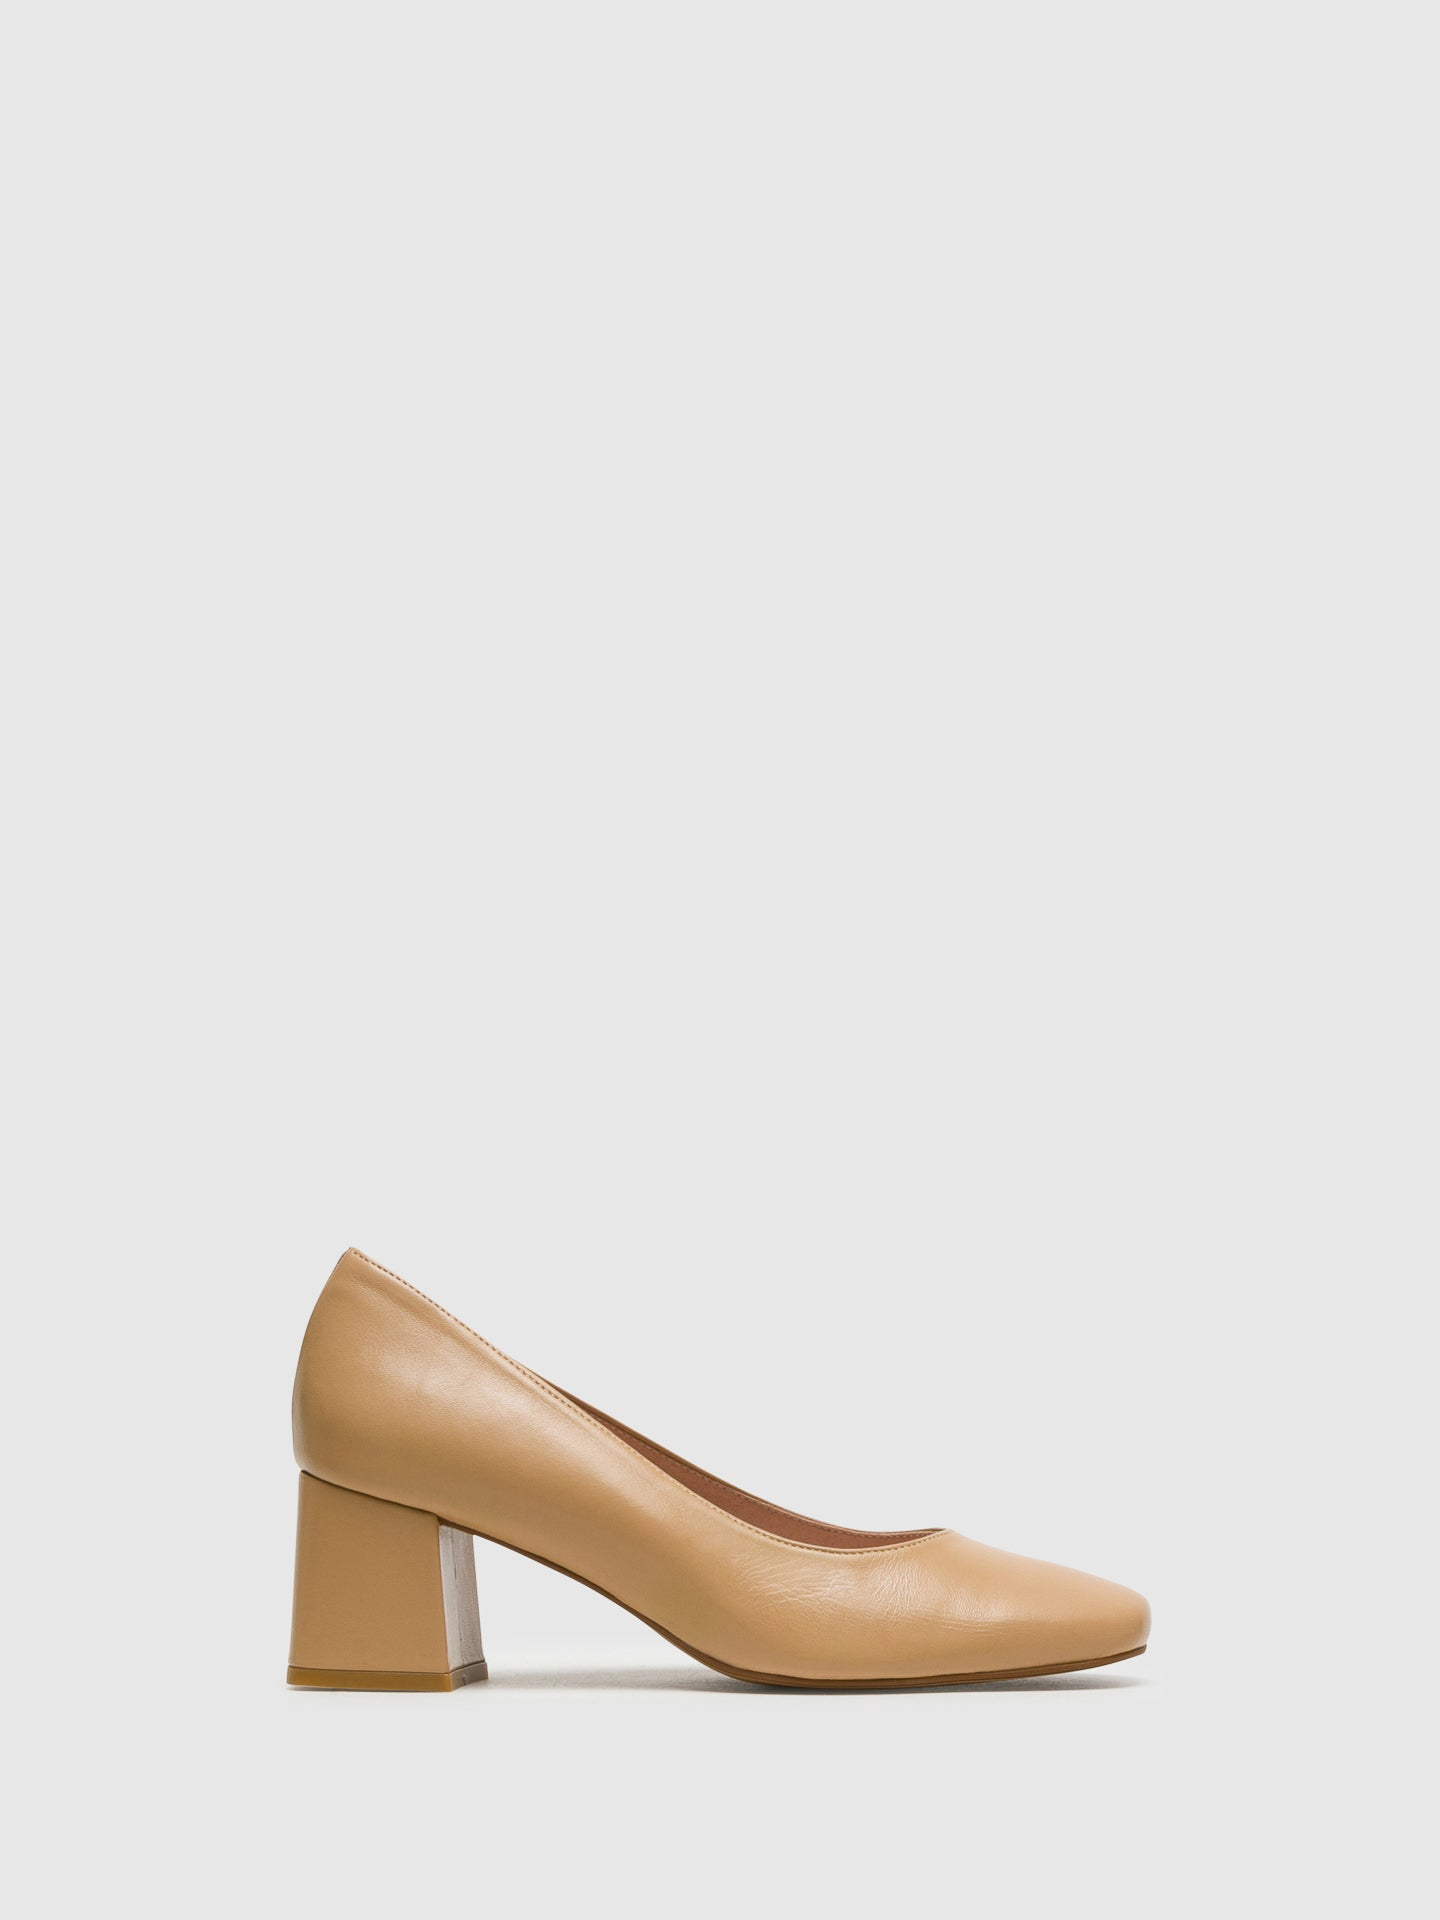 Foreva Beige Square Toe Pumps Shoes